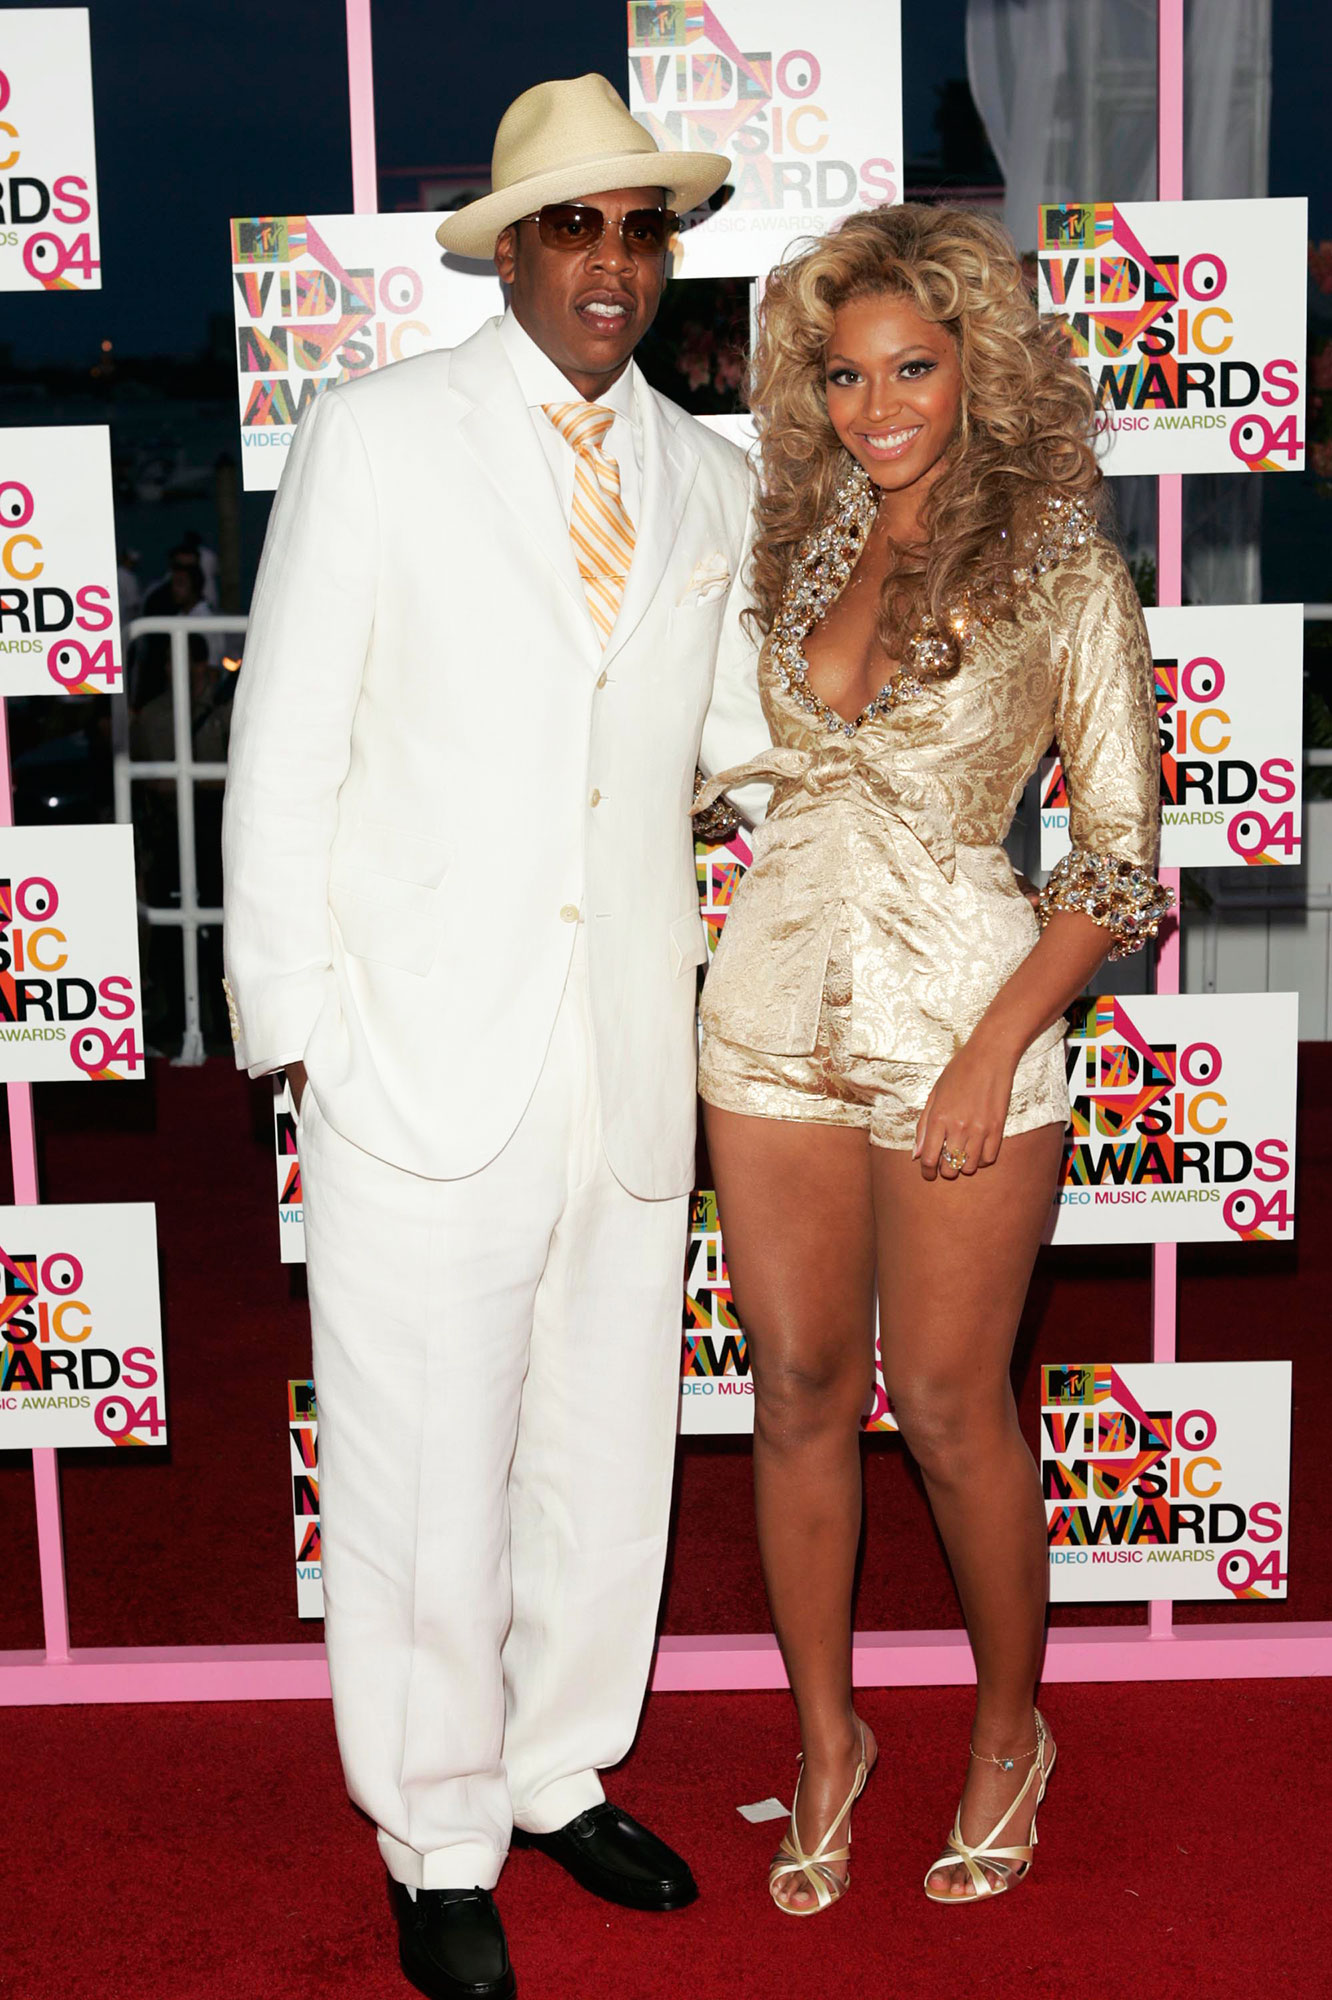 Couples Who Made Their Red Carpet Debuts at an Awards Show - Rapper/producer and nominee Jay-Z and singer Beyonce Knowles arrive at the 2004 MTV Video Music Awards at the American Airlines Arena August 29, 2004 in Miami, Florida.